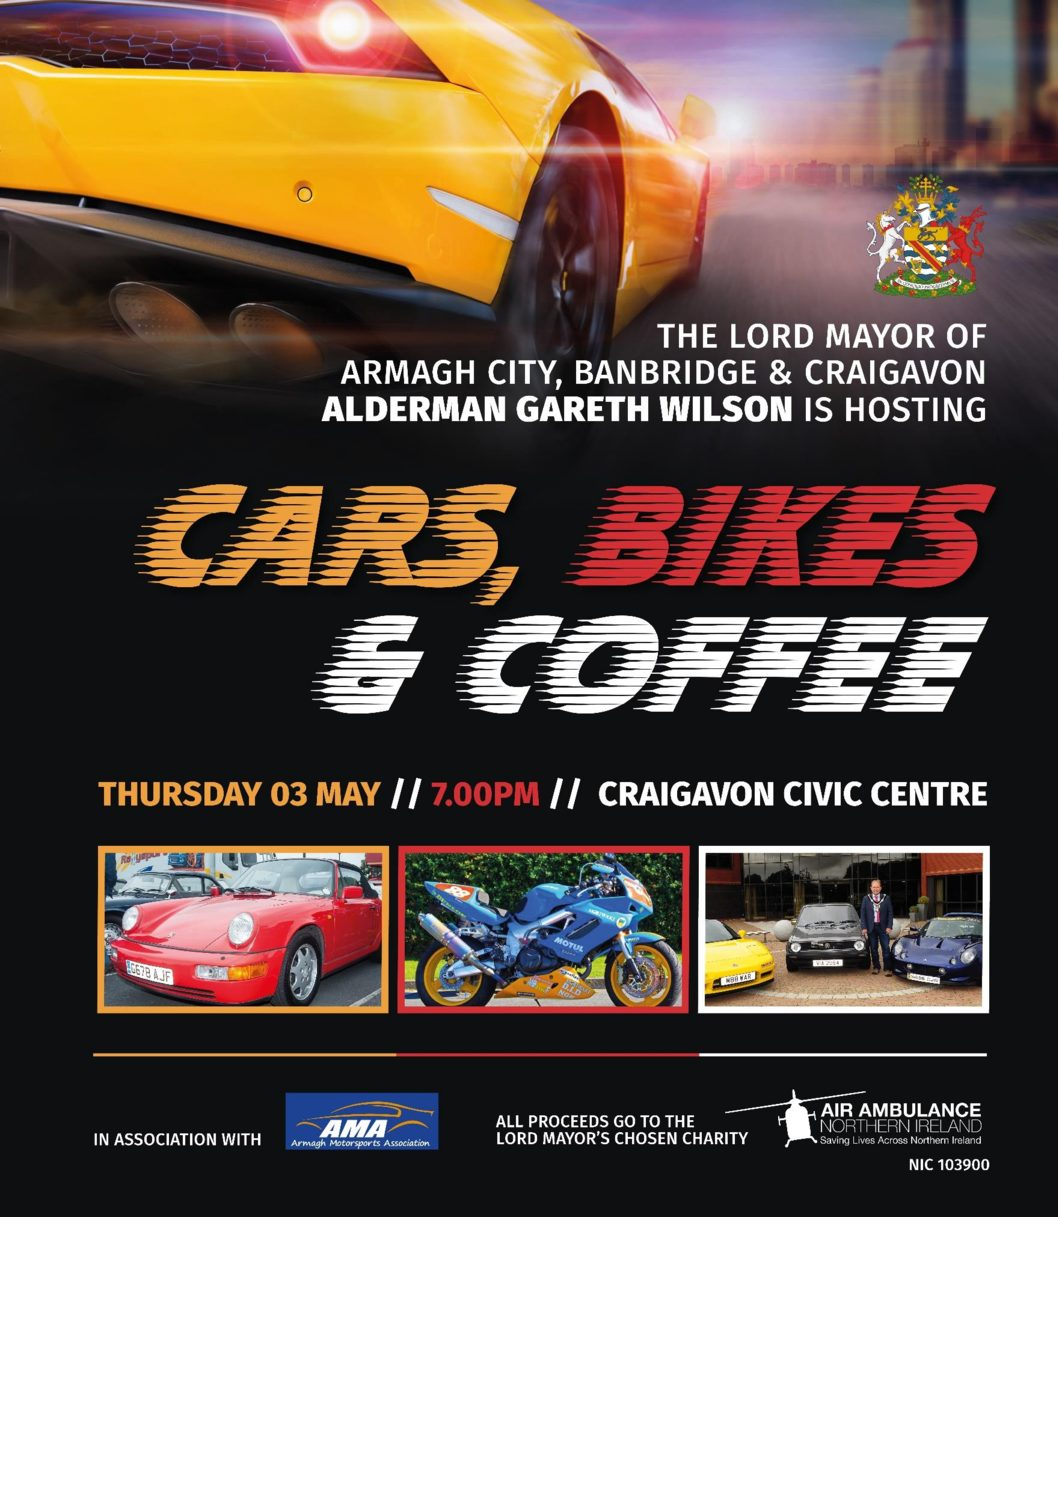 cars, bikes & coffee | craigavon civic and conference centre